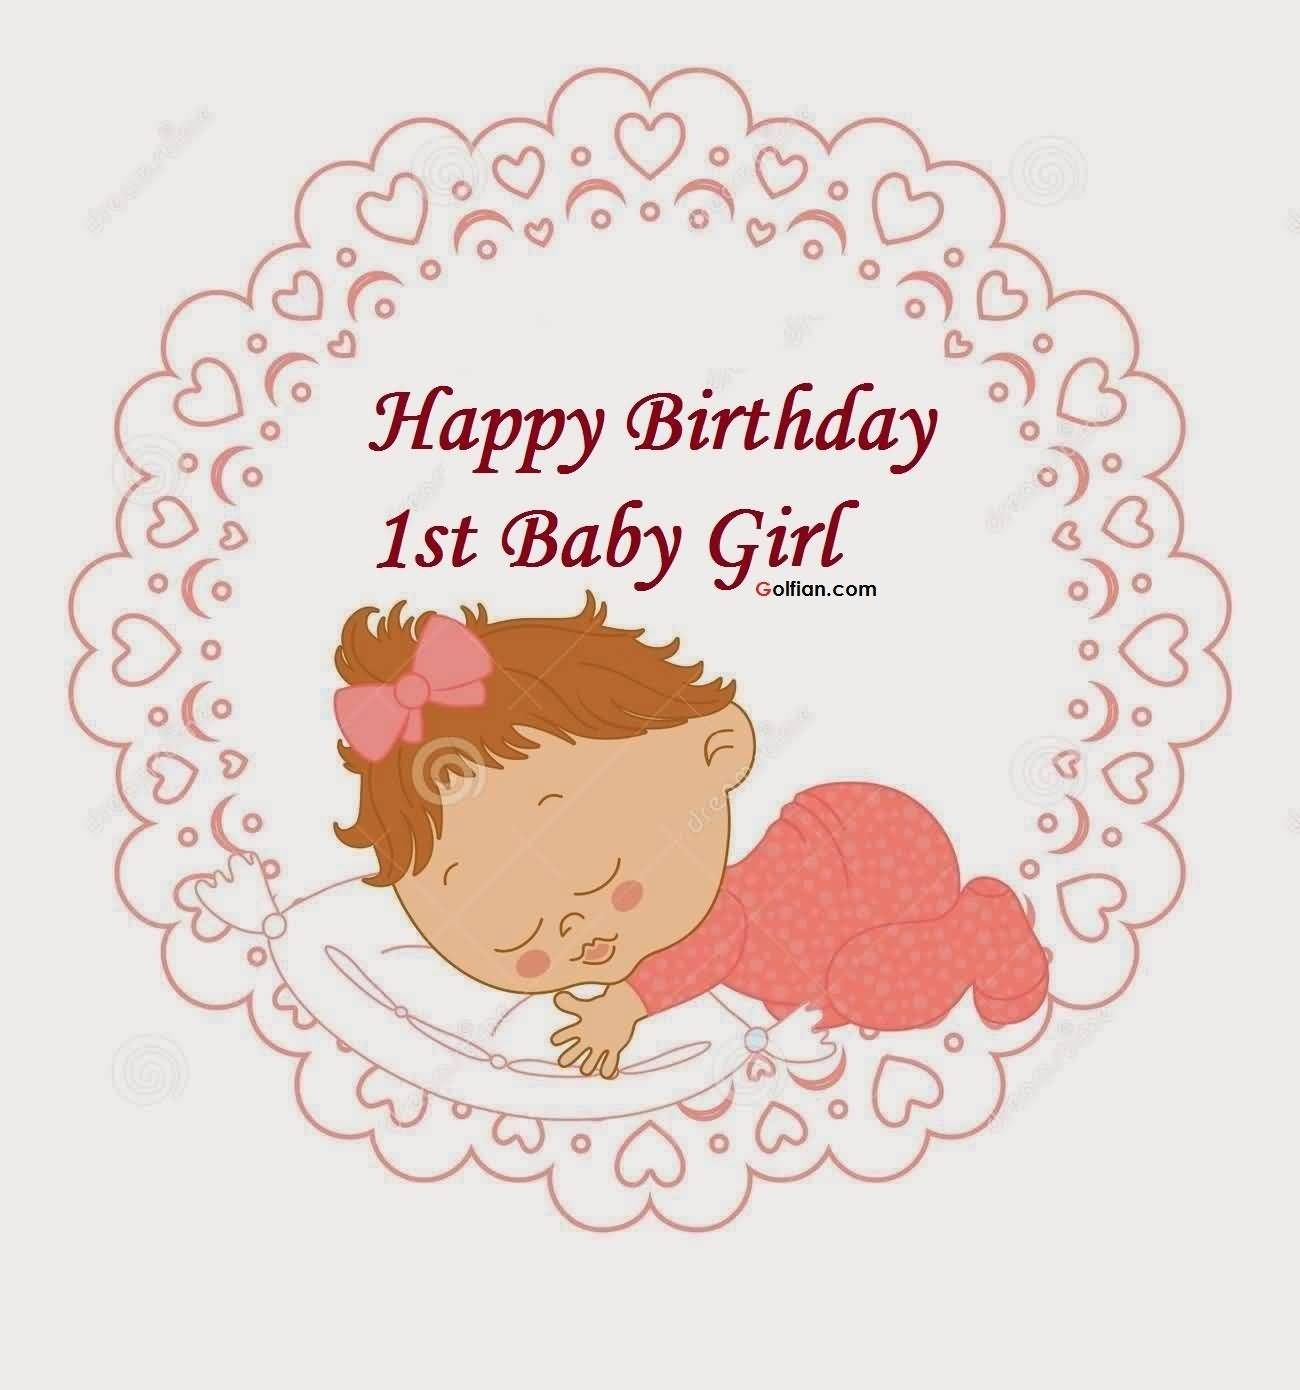 Best ideas about Baby Birthday Wishes . Save or Pin 40 Amazing Birthday Wishes For Baby Girl Golfian Now.